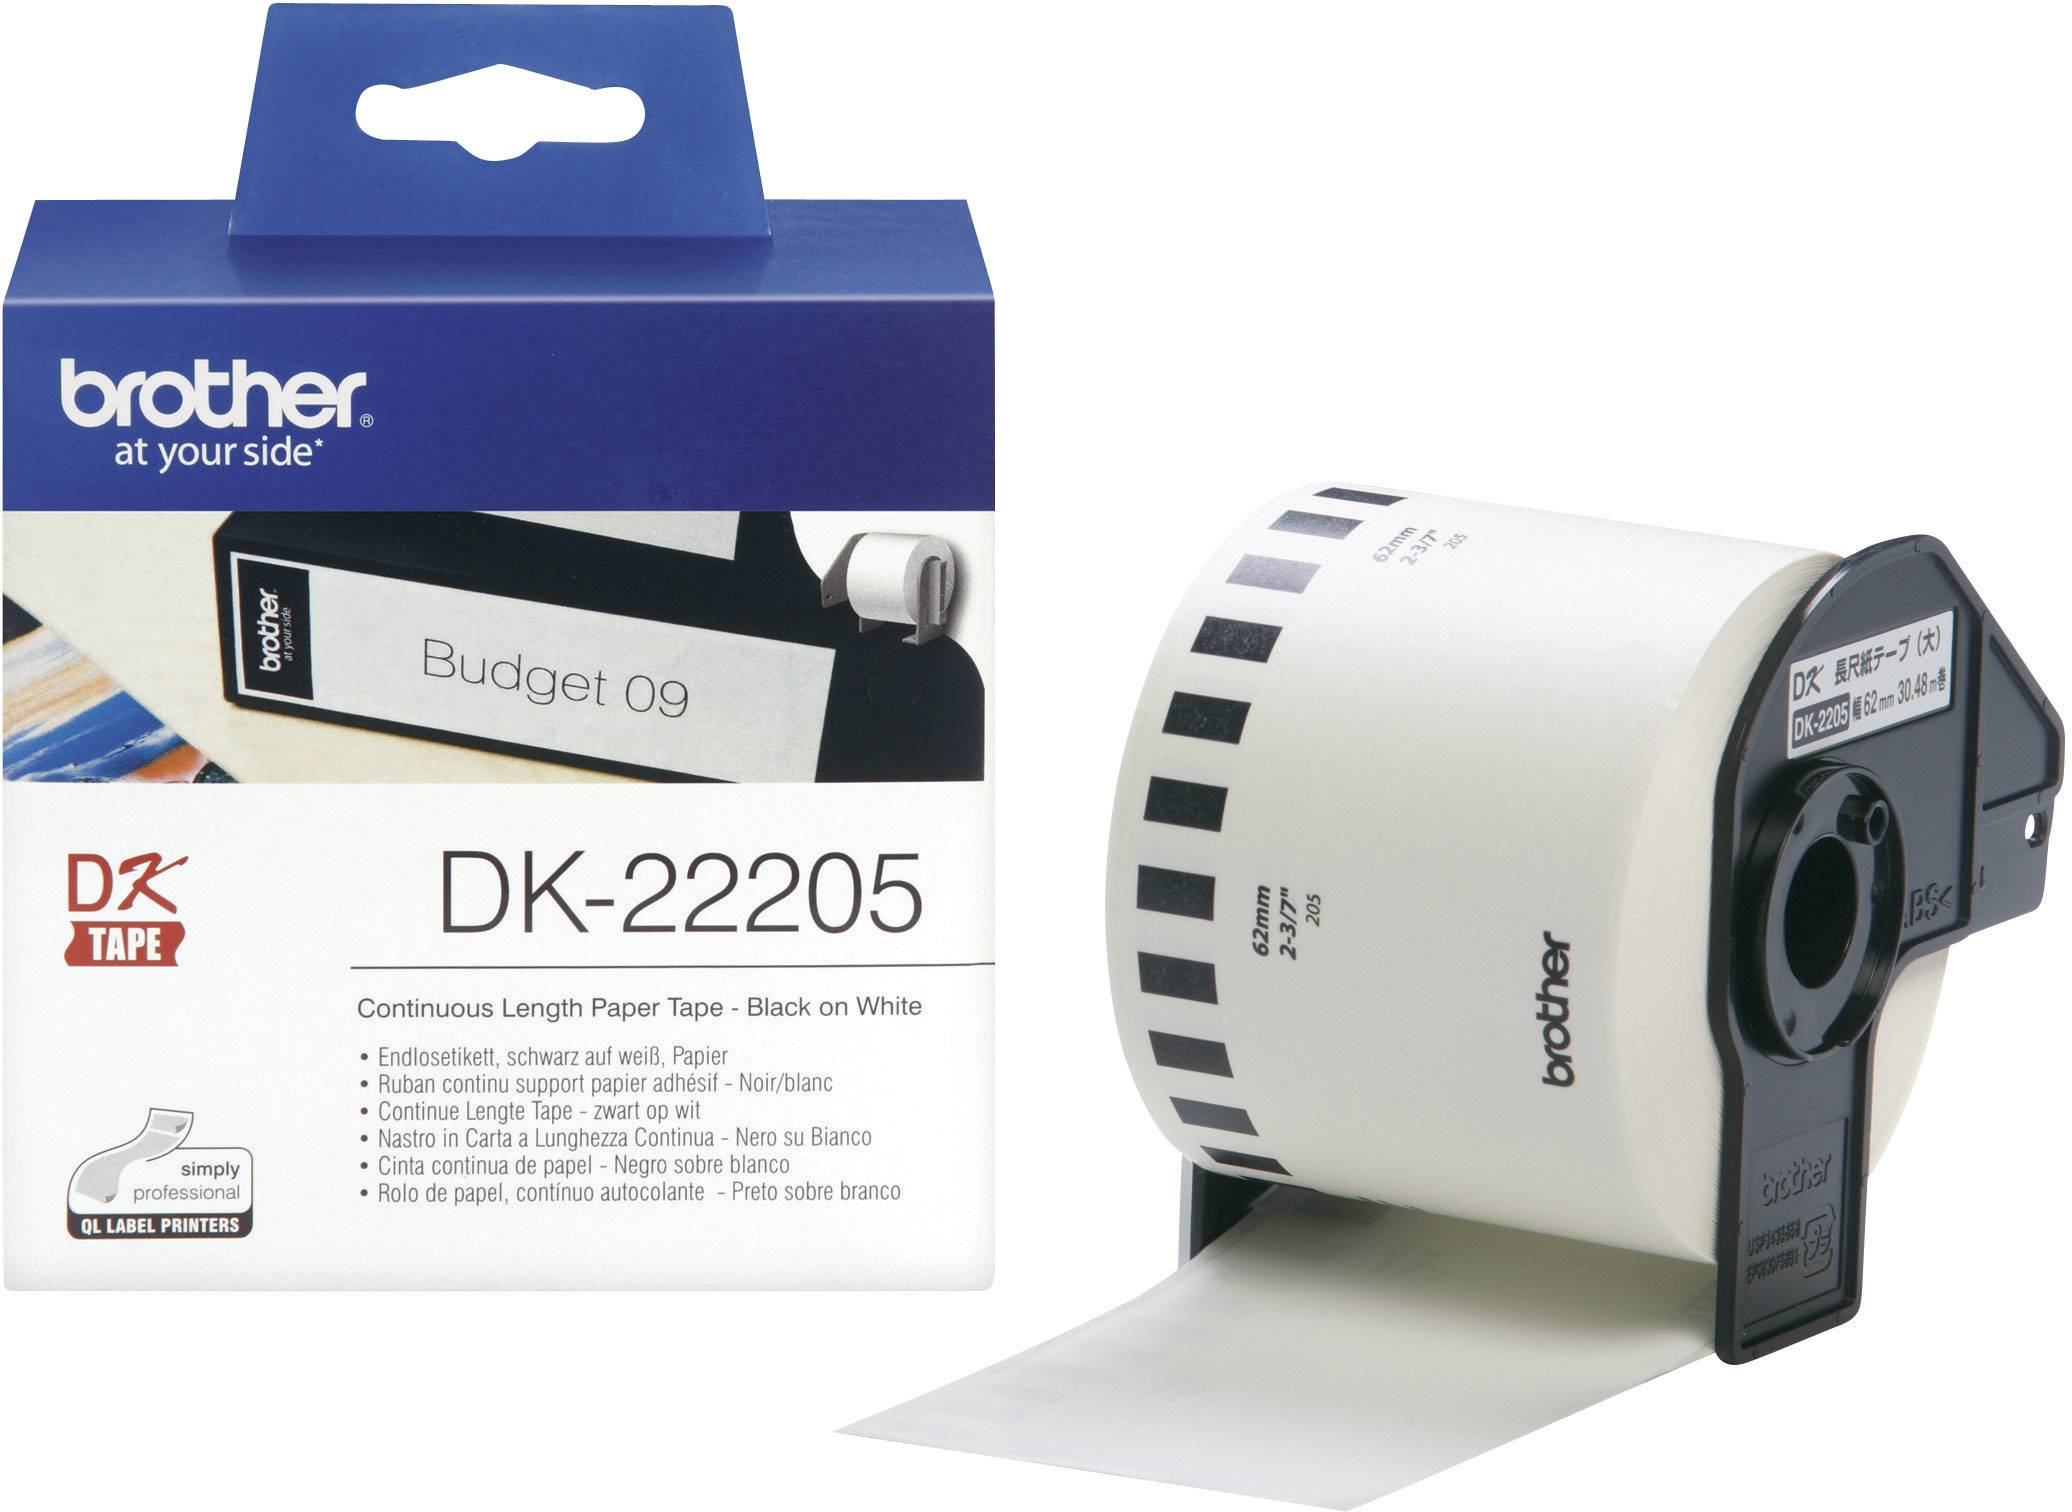 5x Brother Replacement DK-22205 Printer Label Tape 62mm Roll Spool for QL-570